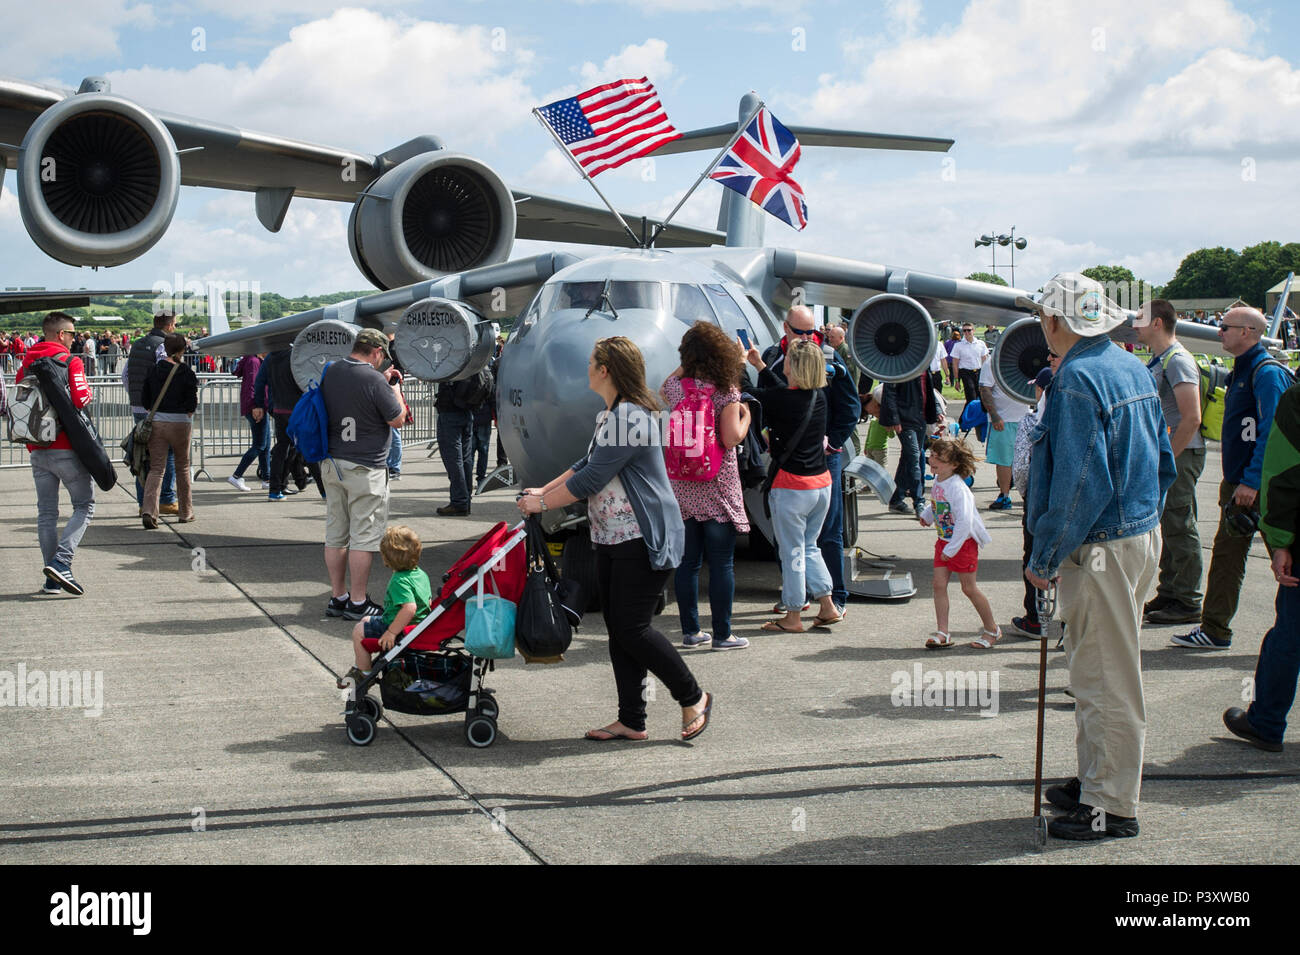 "Attendees of the Yeovilton, England crowd around the 315th Airift Wing's mini C-17 July 2. This was the mini C-17's first trip across the pond and was a huge hit at Yeovilton Air Day 2016. This is the 315th AWs second time visiting Royal Naval Air Station Yeovilton, England, and the mighty presence of the mini C-17 helped seal the deal for another ""Best Static Display"" award. The miniature C-17 has been used all across the United States to promote the Air Force Reserve and bolster recruiting efforts at air shows, parades and other community events. (U.S. Air Force photo by Master Sgt. Shane El - Stock Image"